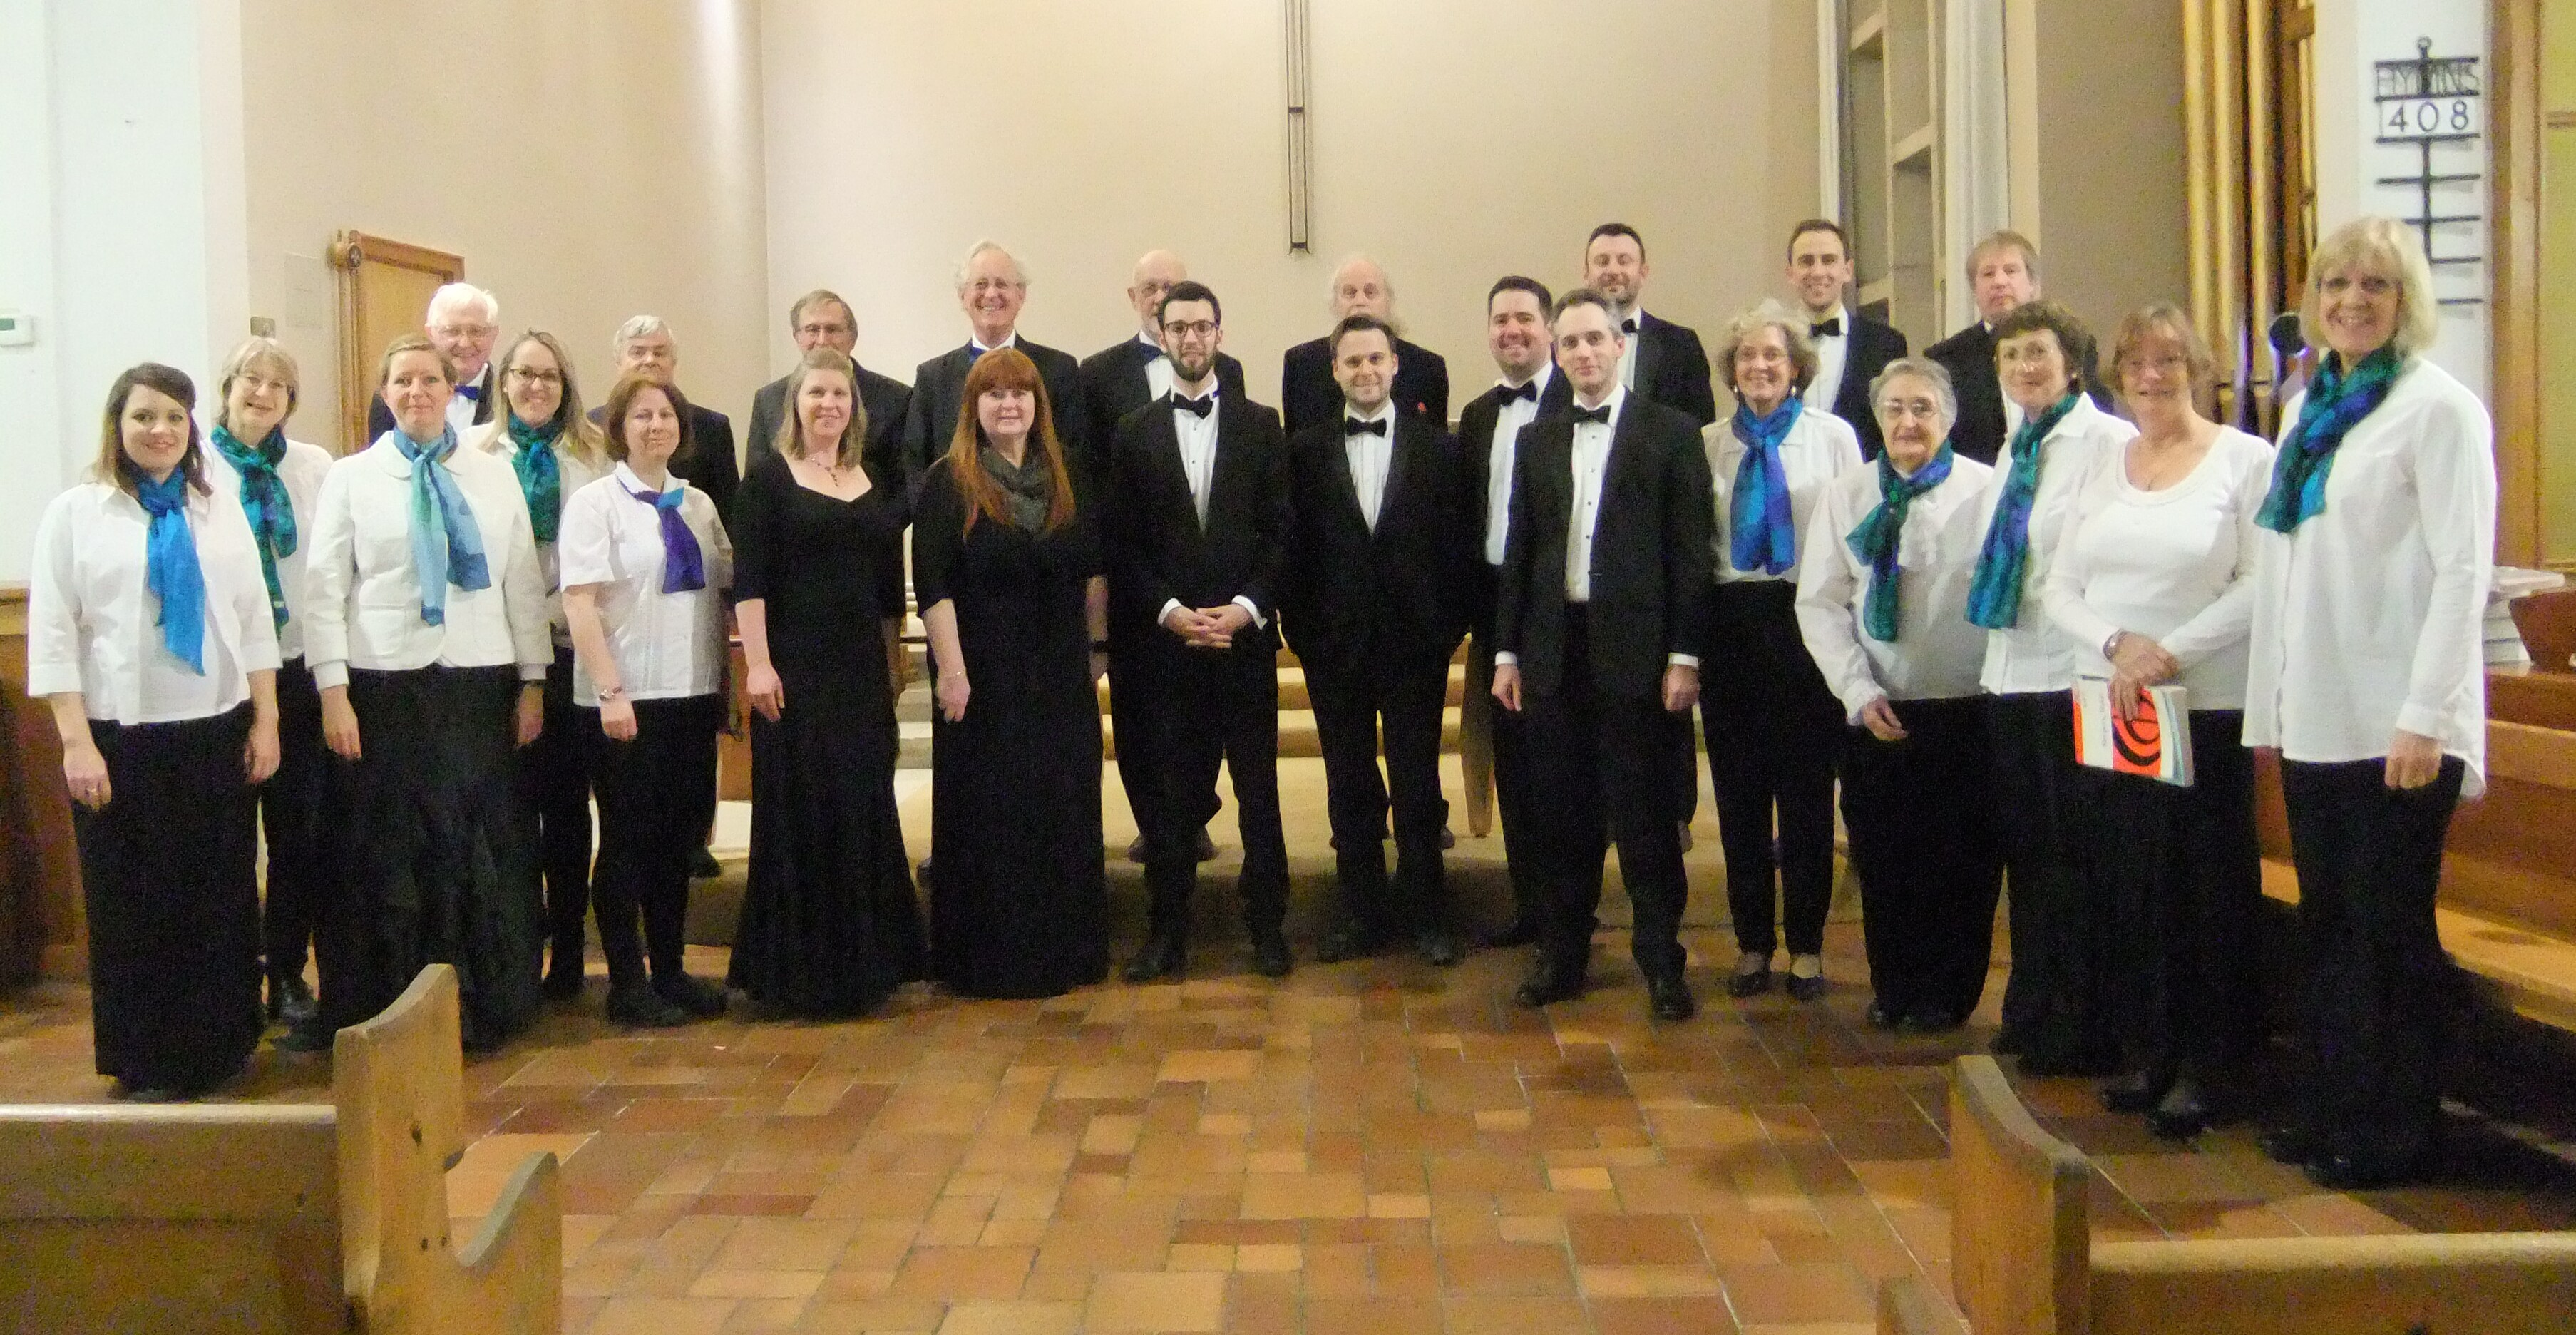 The Crown Singers combined with Musica Beata and organist Christopher Cromar for their concert in St John's Church, Grove on 26 November 2016